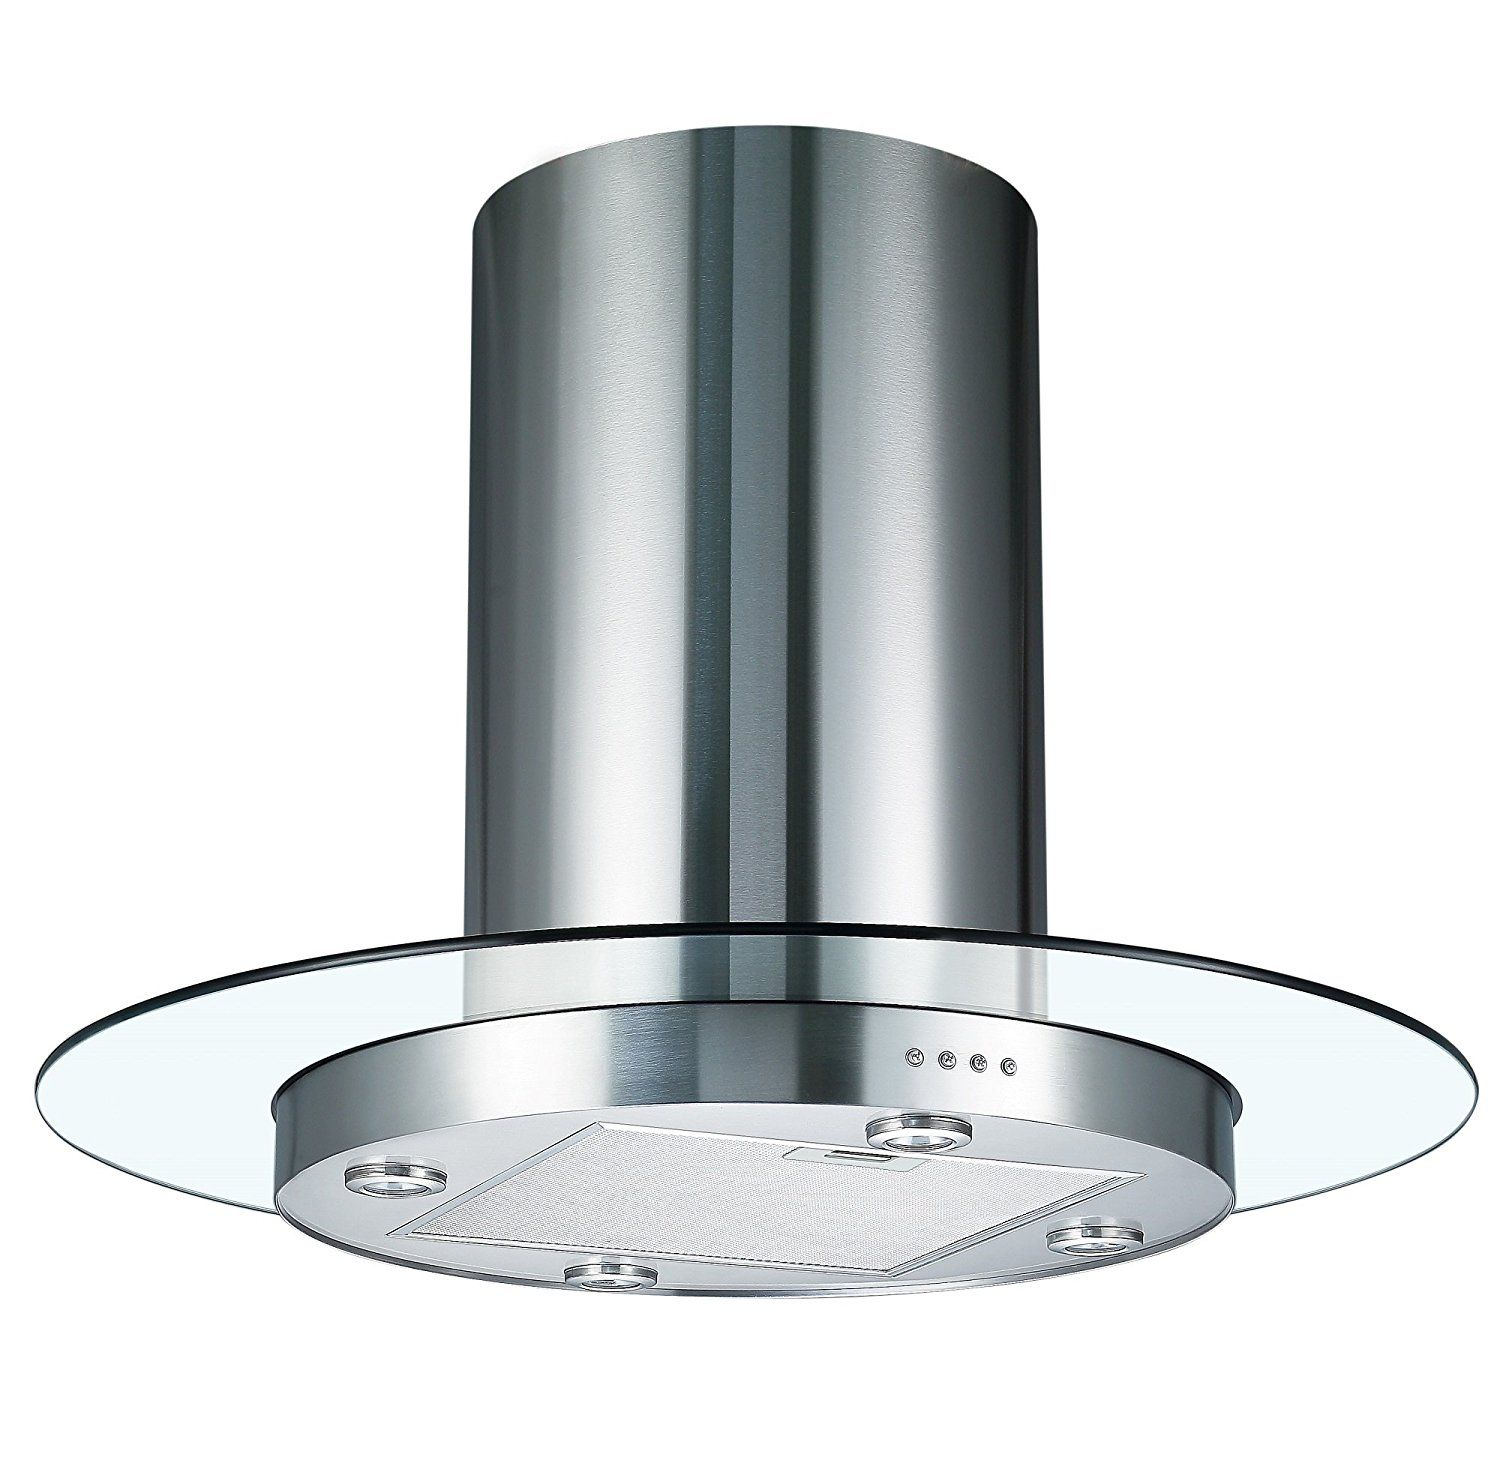 Cookology TUB900GL 90cm Round Glass & Stainless Steel Tubular Island ...